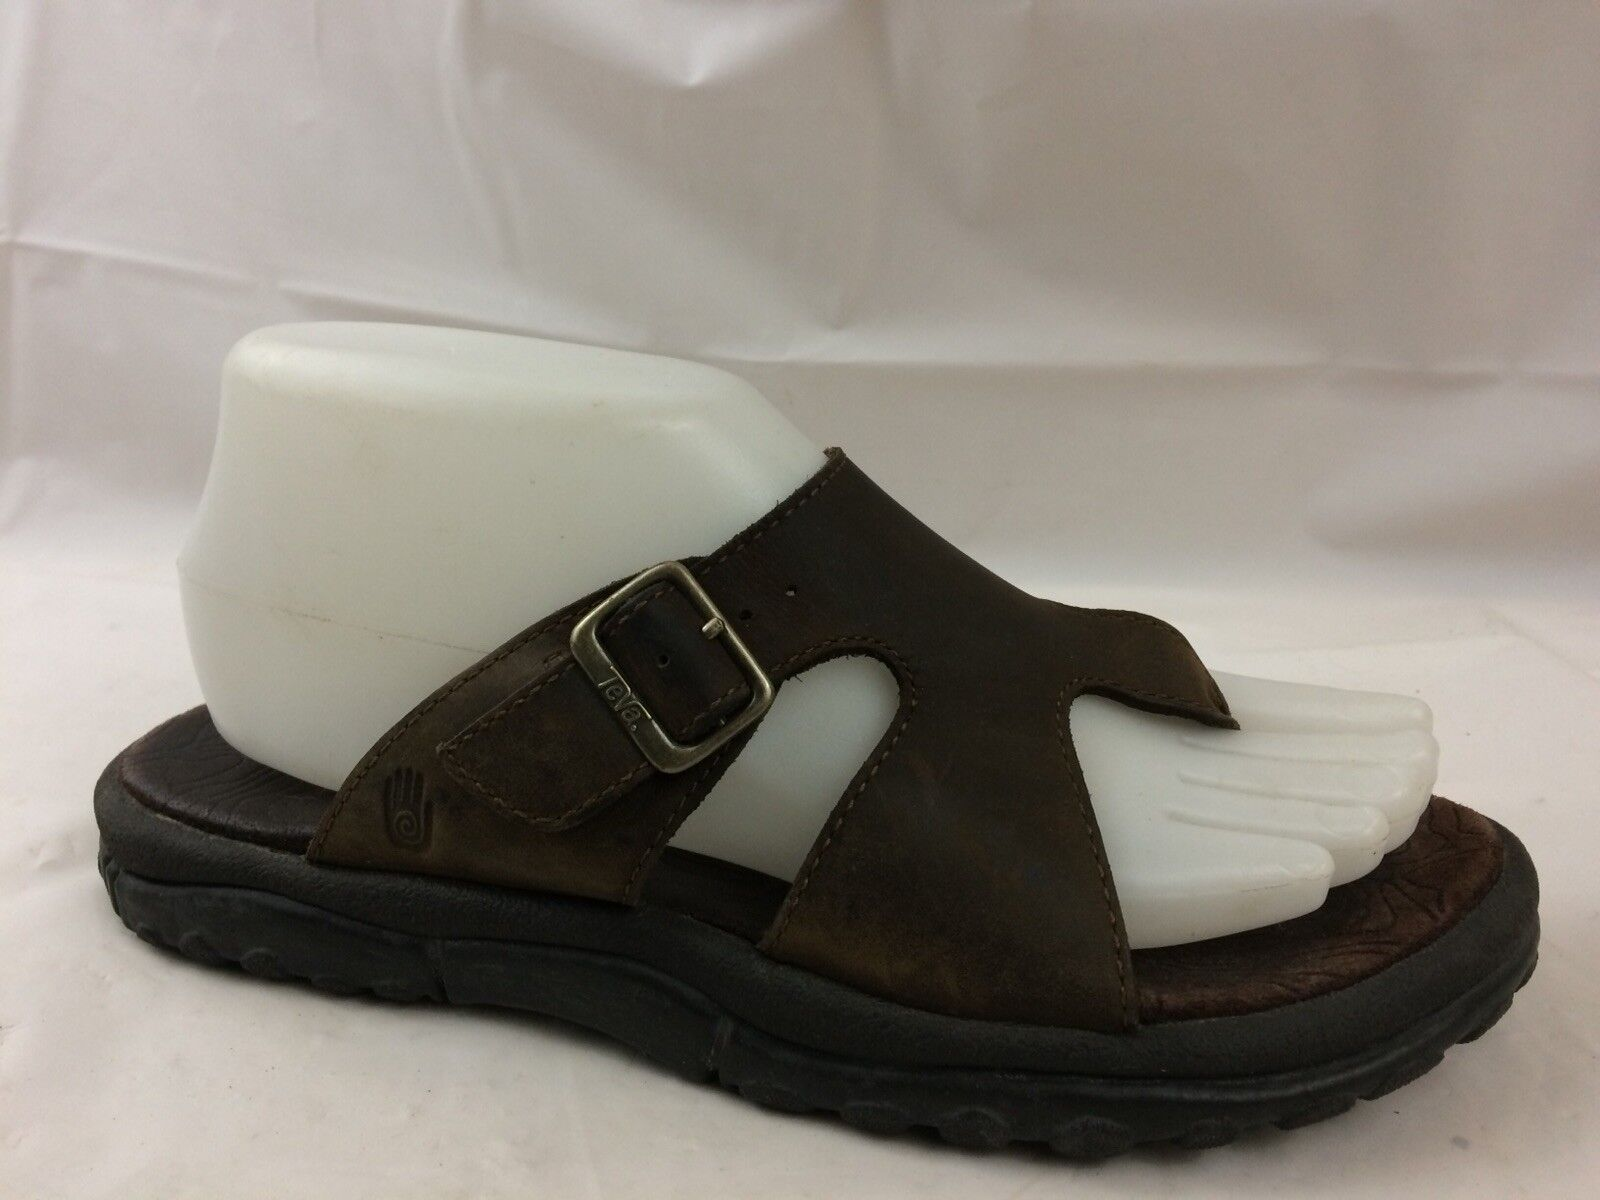 Teva Womens 7 Med Flip Flop Sandals shoes Buckle Brown Leather Wedge Casual Shoc